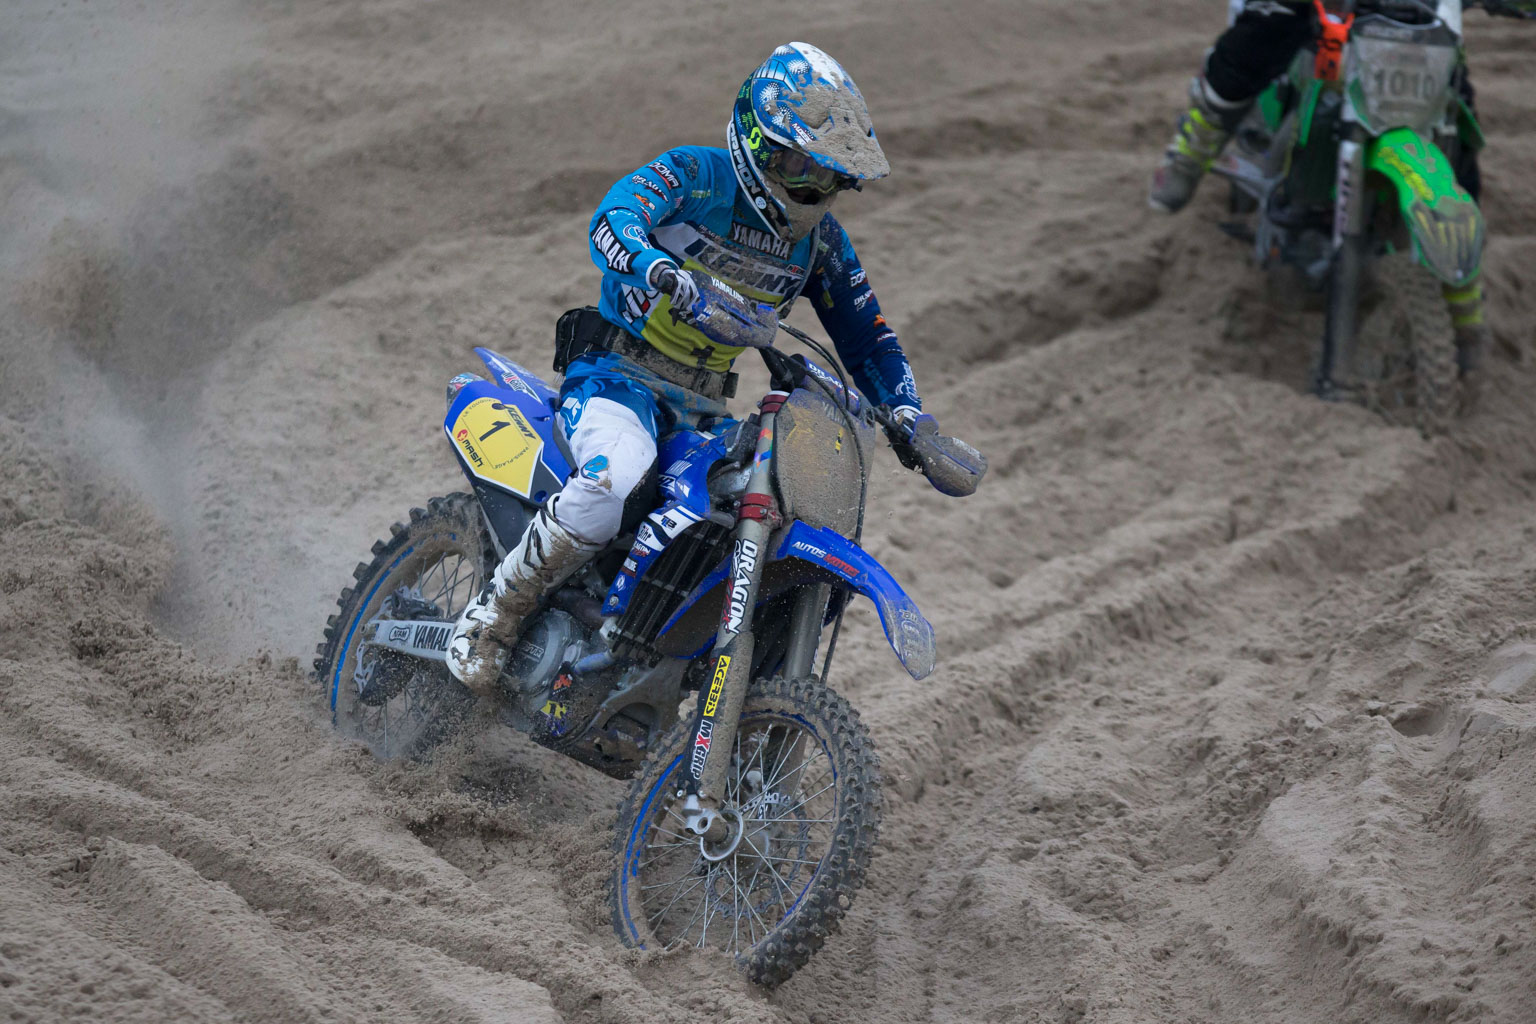 Daymond Martens (Yamaha) was fourth